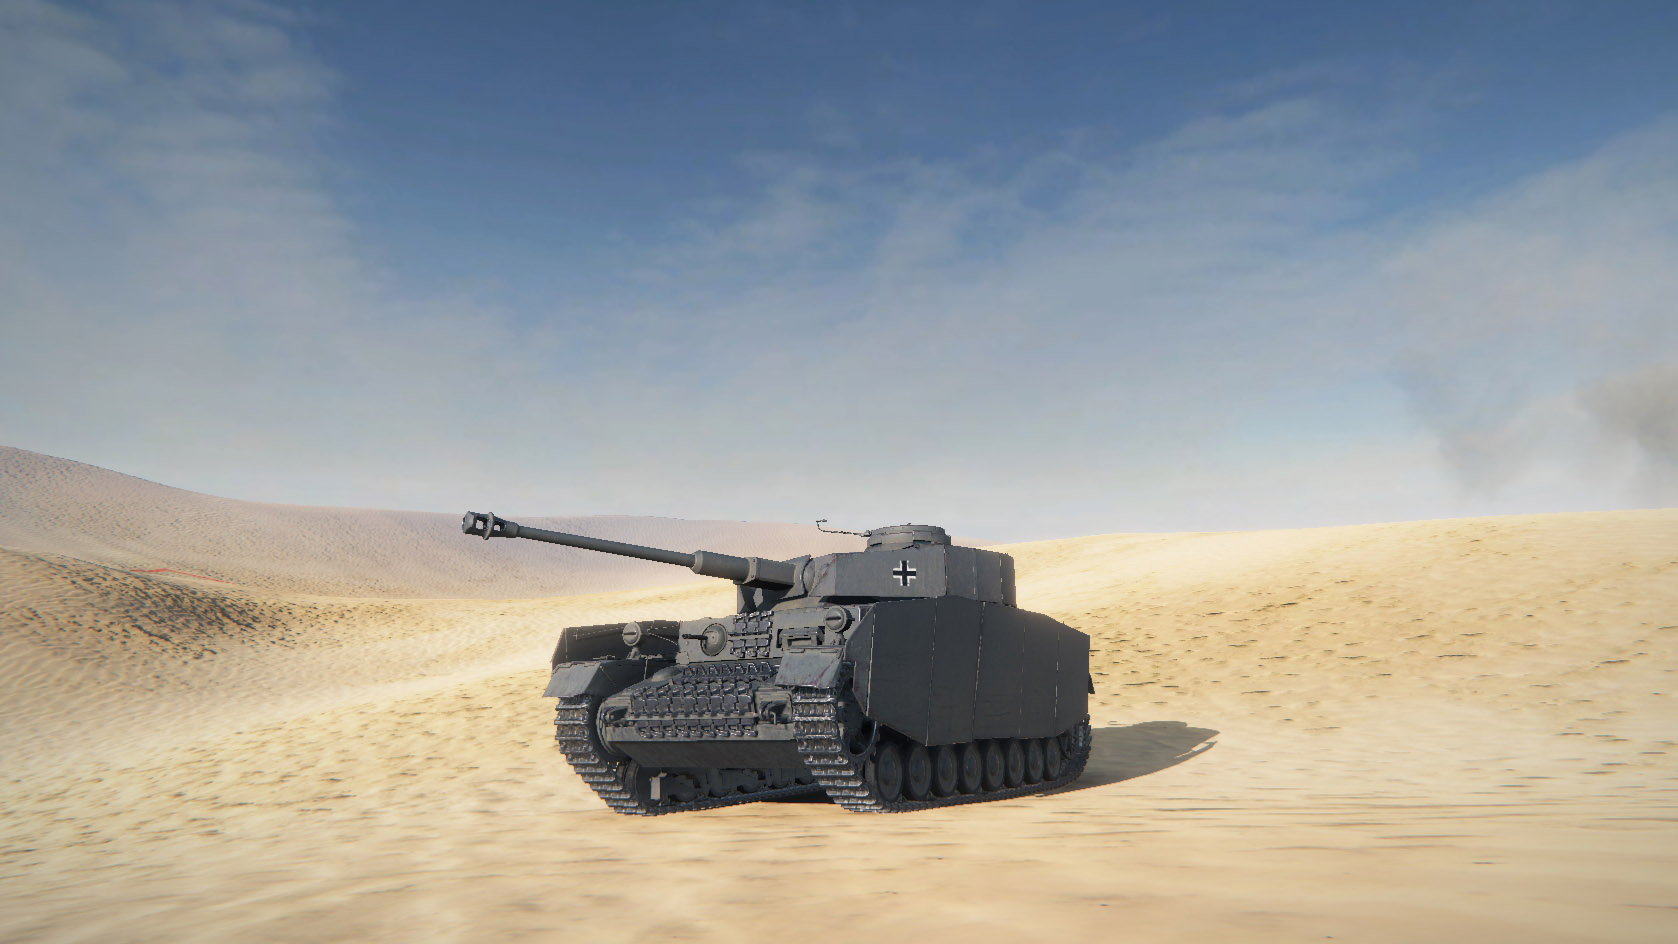 The Pz Kpfw IV Ausf H has an impressive amount of skirting armor protecting its tracks.